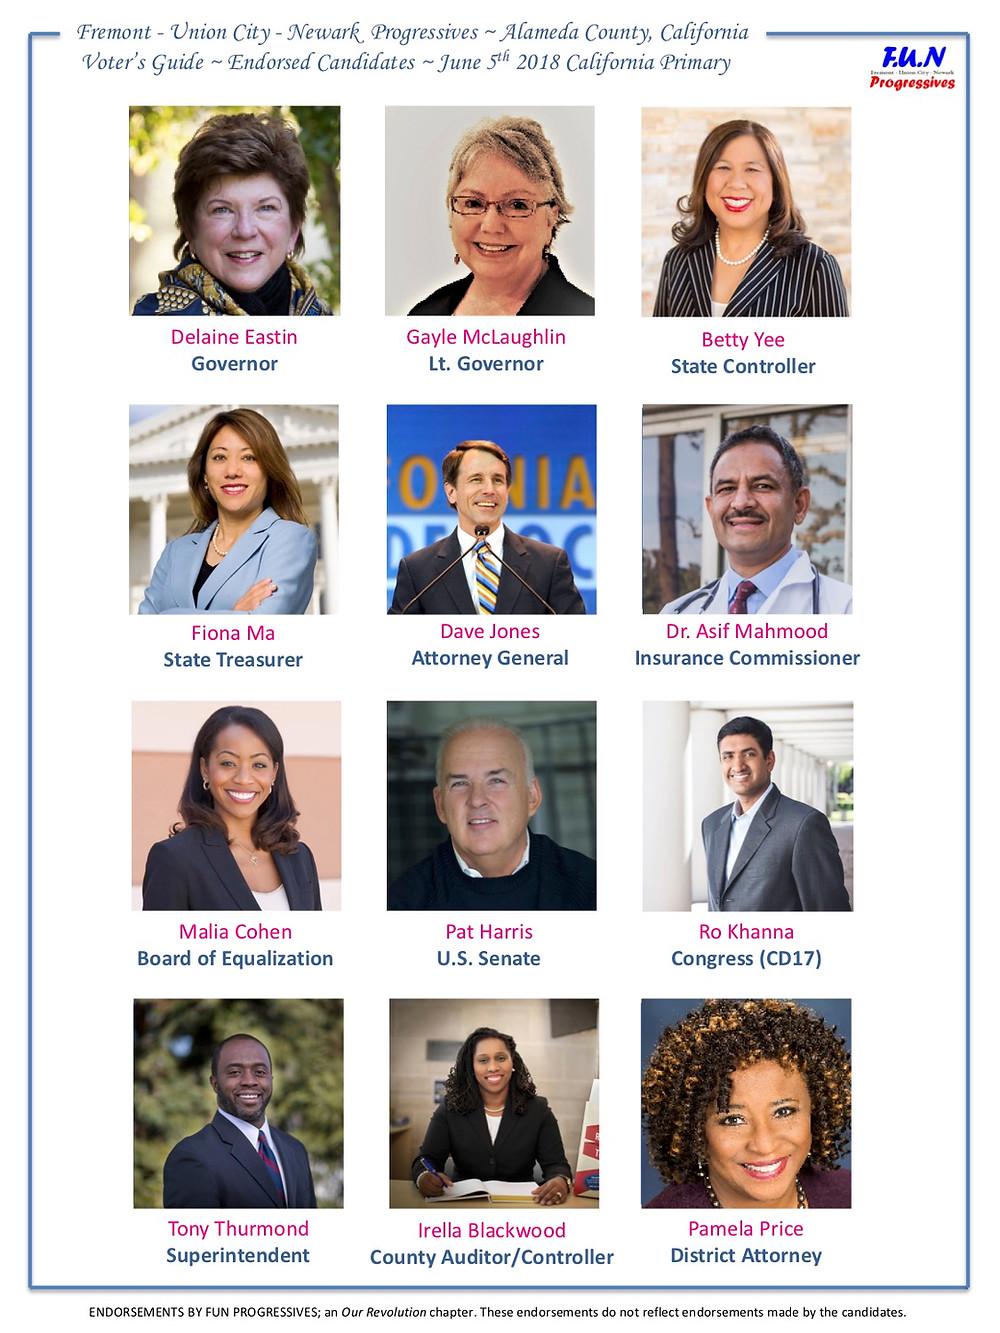 Fremont - Union City - Newark Progressives - Alameda County, CA  Voter's Guide - Endorsed Candidates - June 5th California Primary